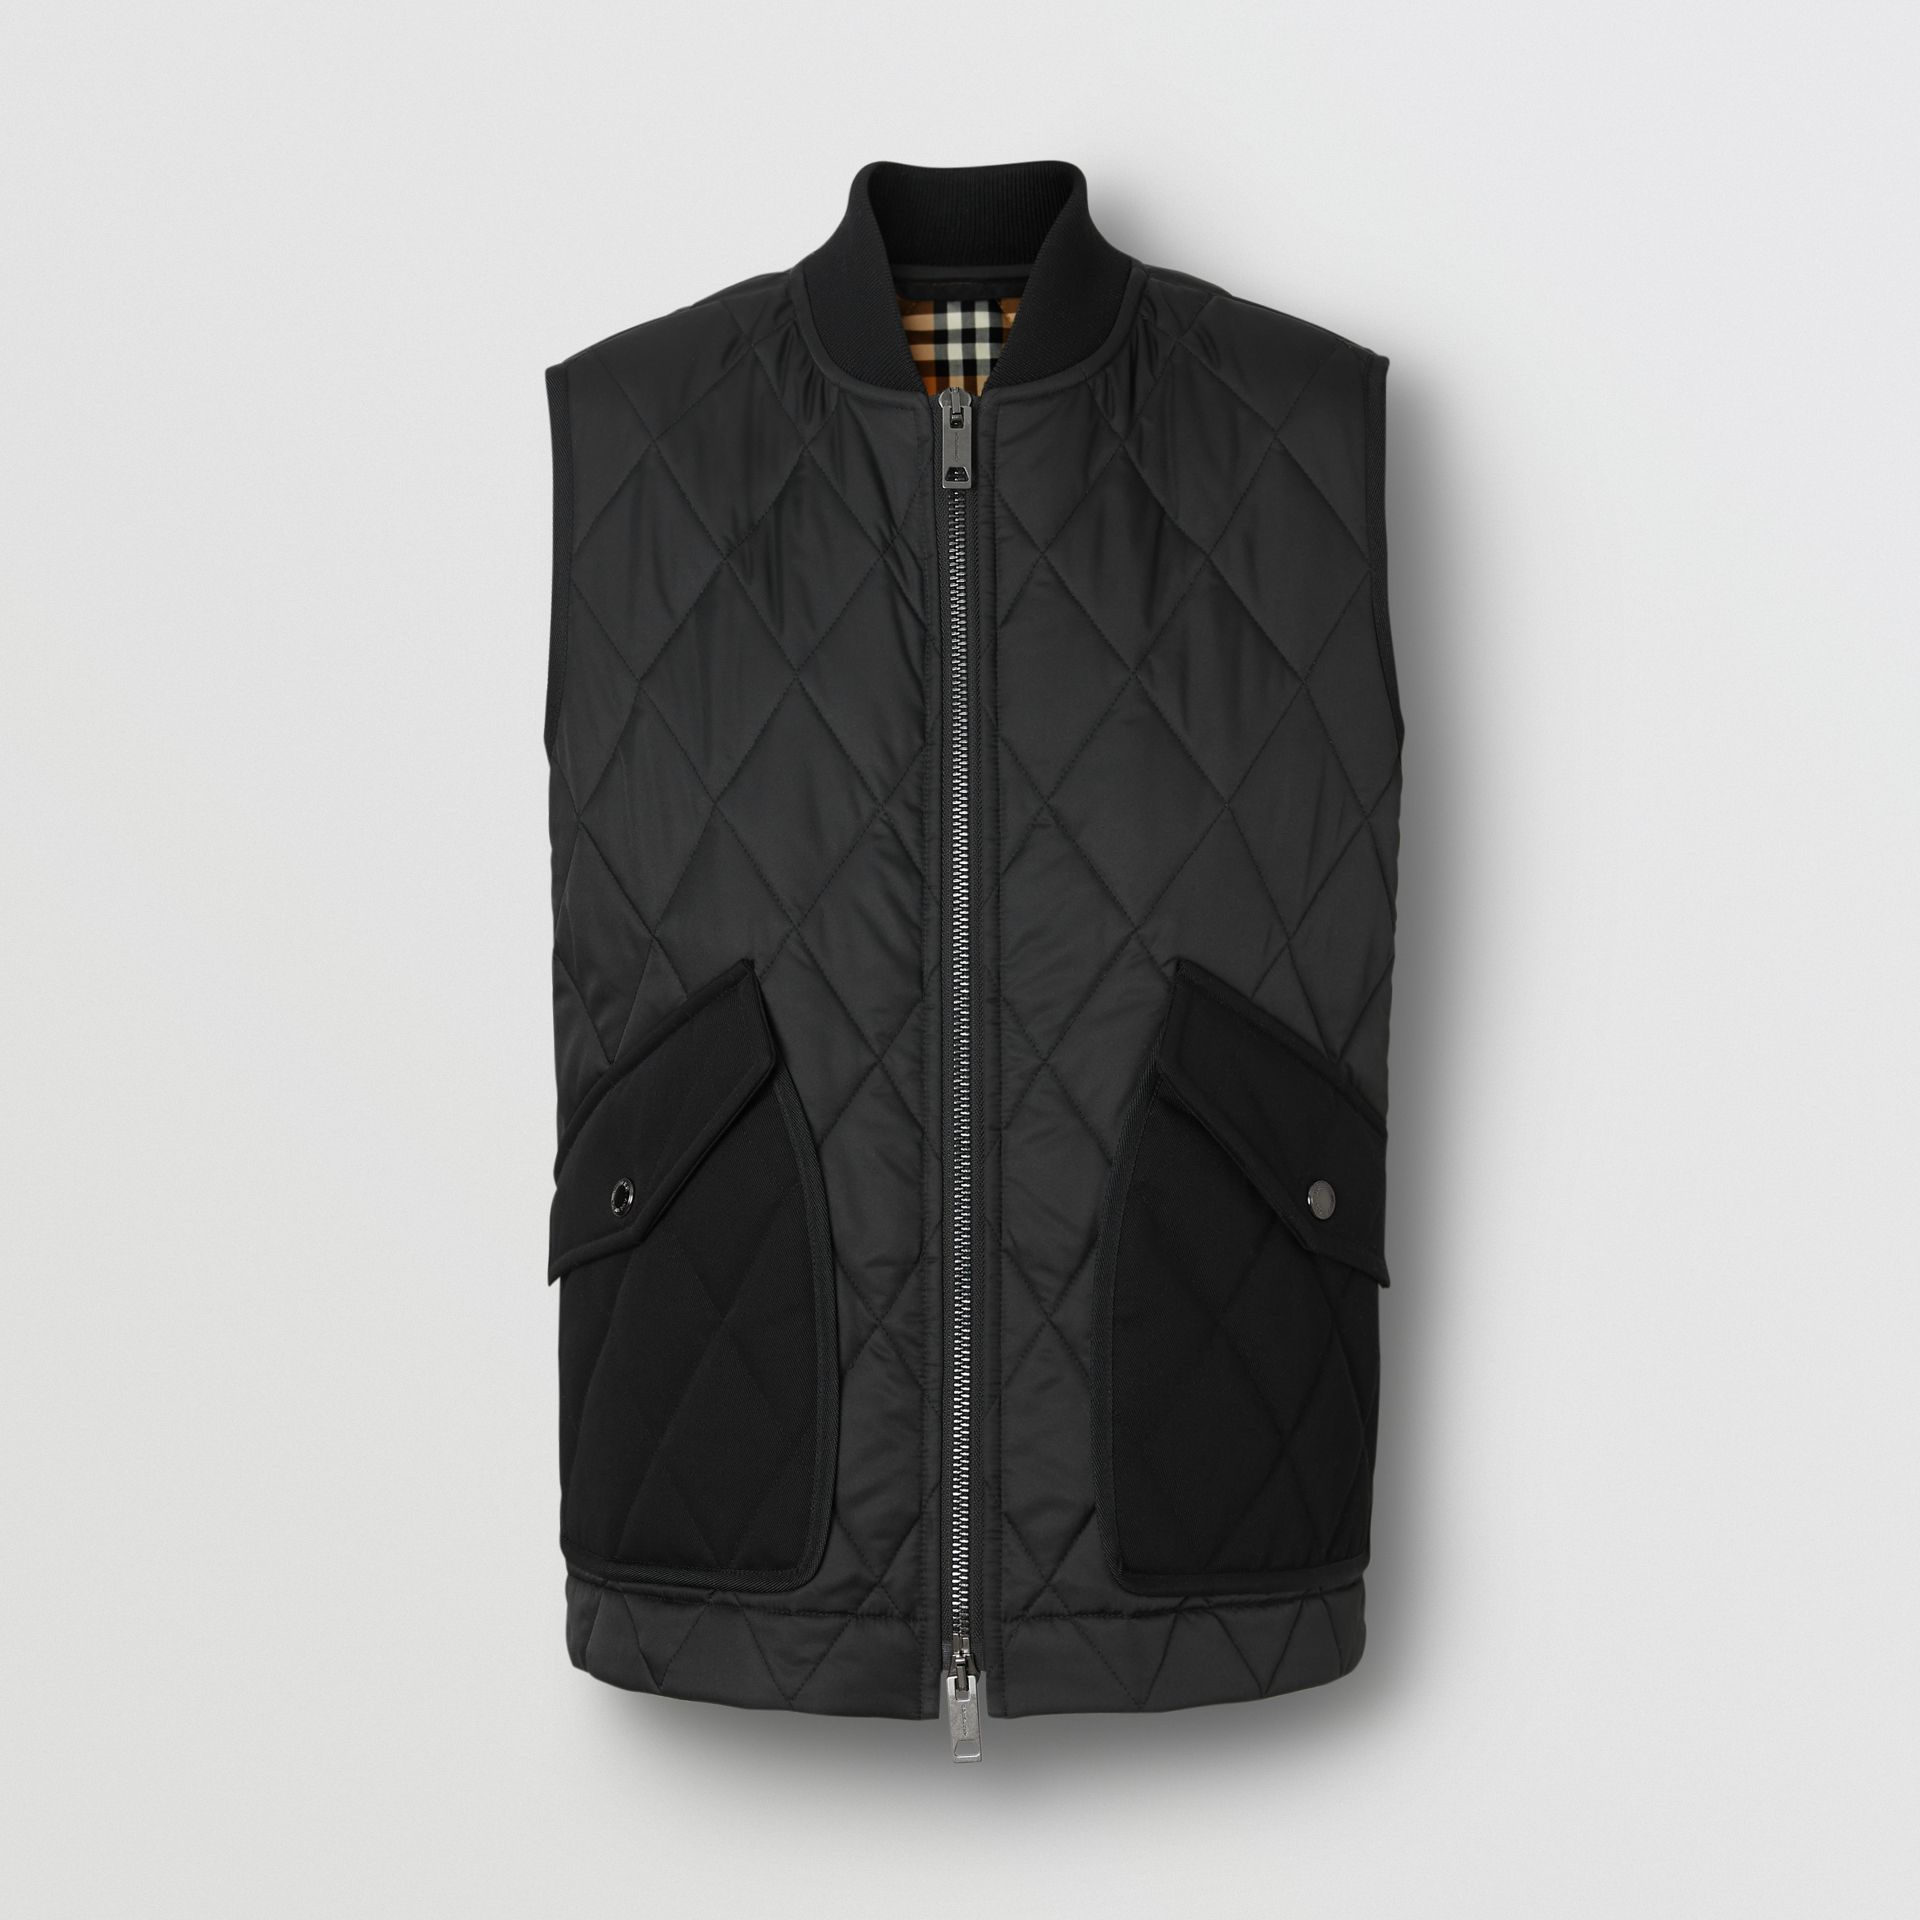 Monogram Motif Diamond Quilted Gilet in Black - Women | Burberry - gallery image 3